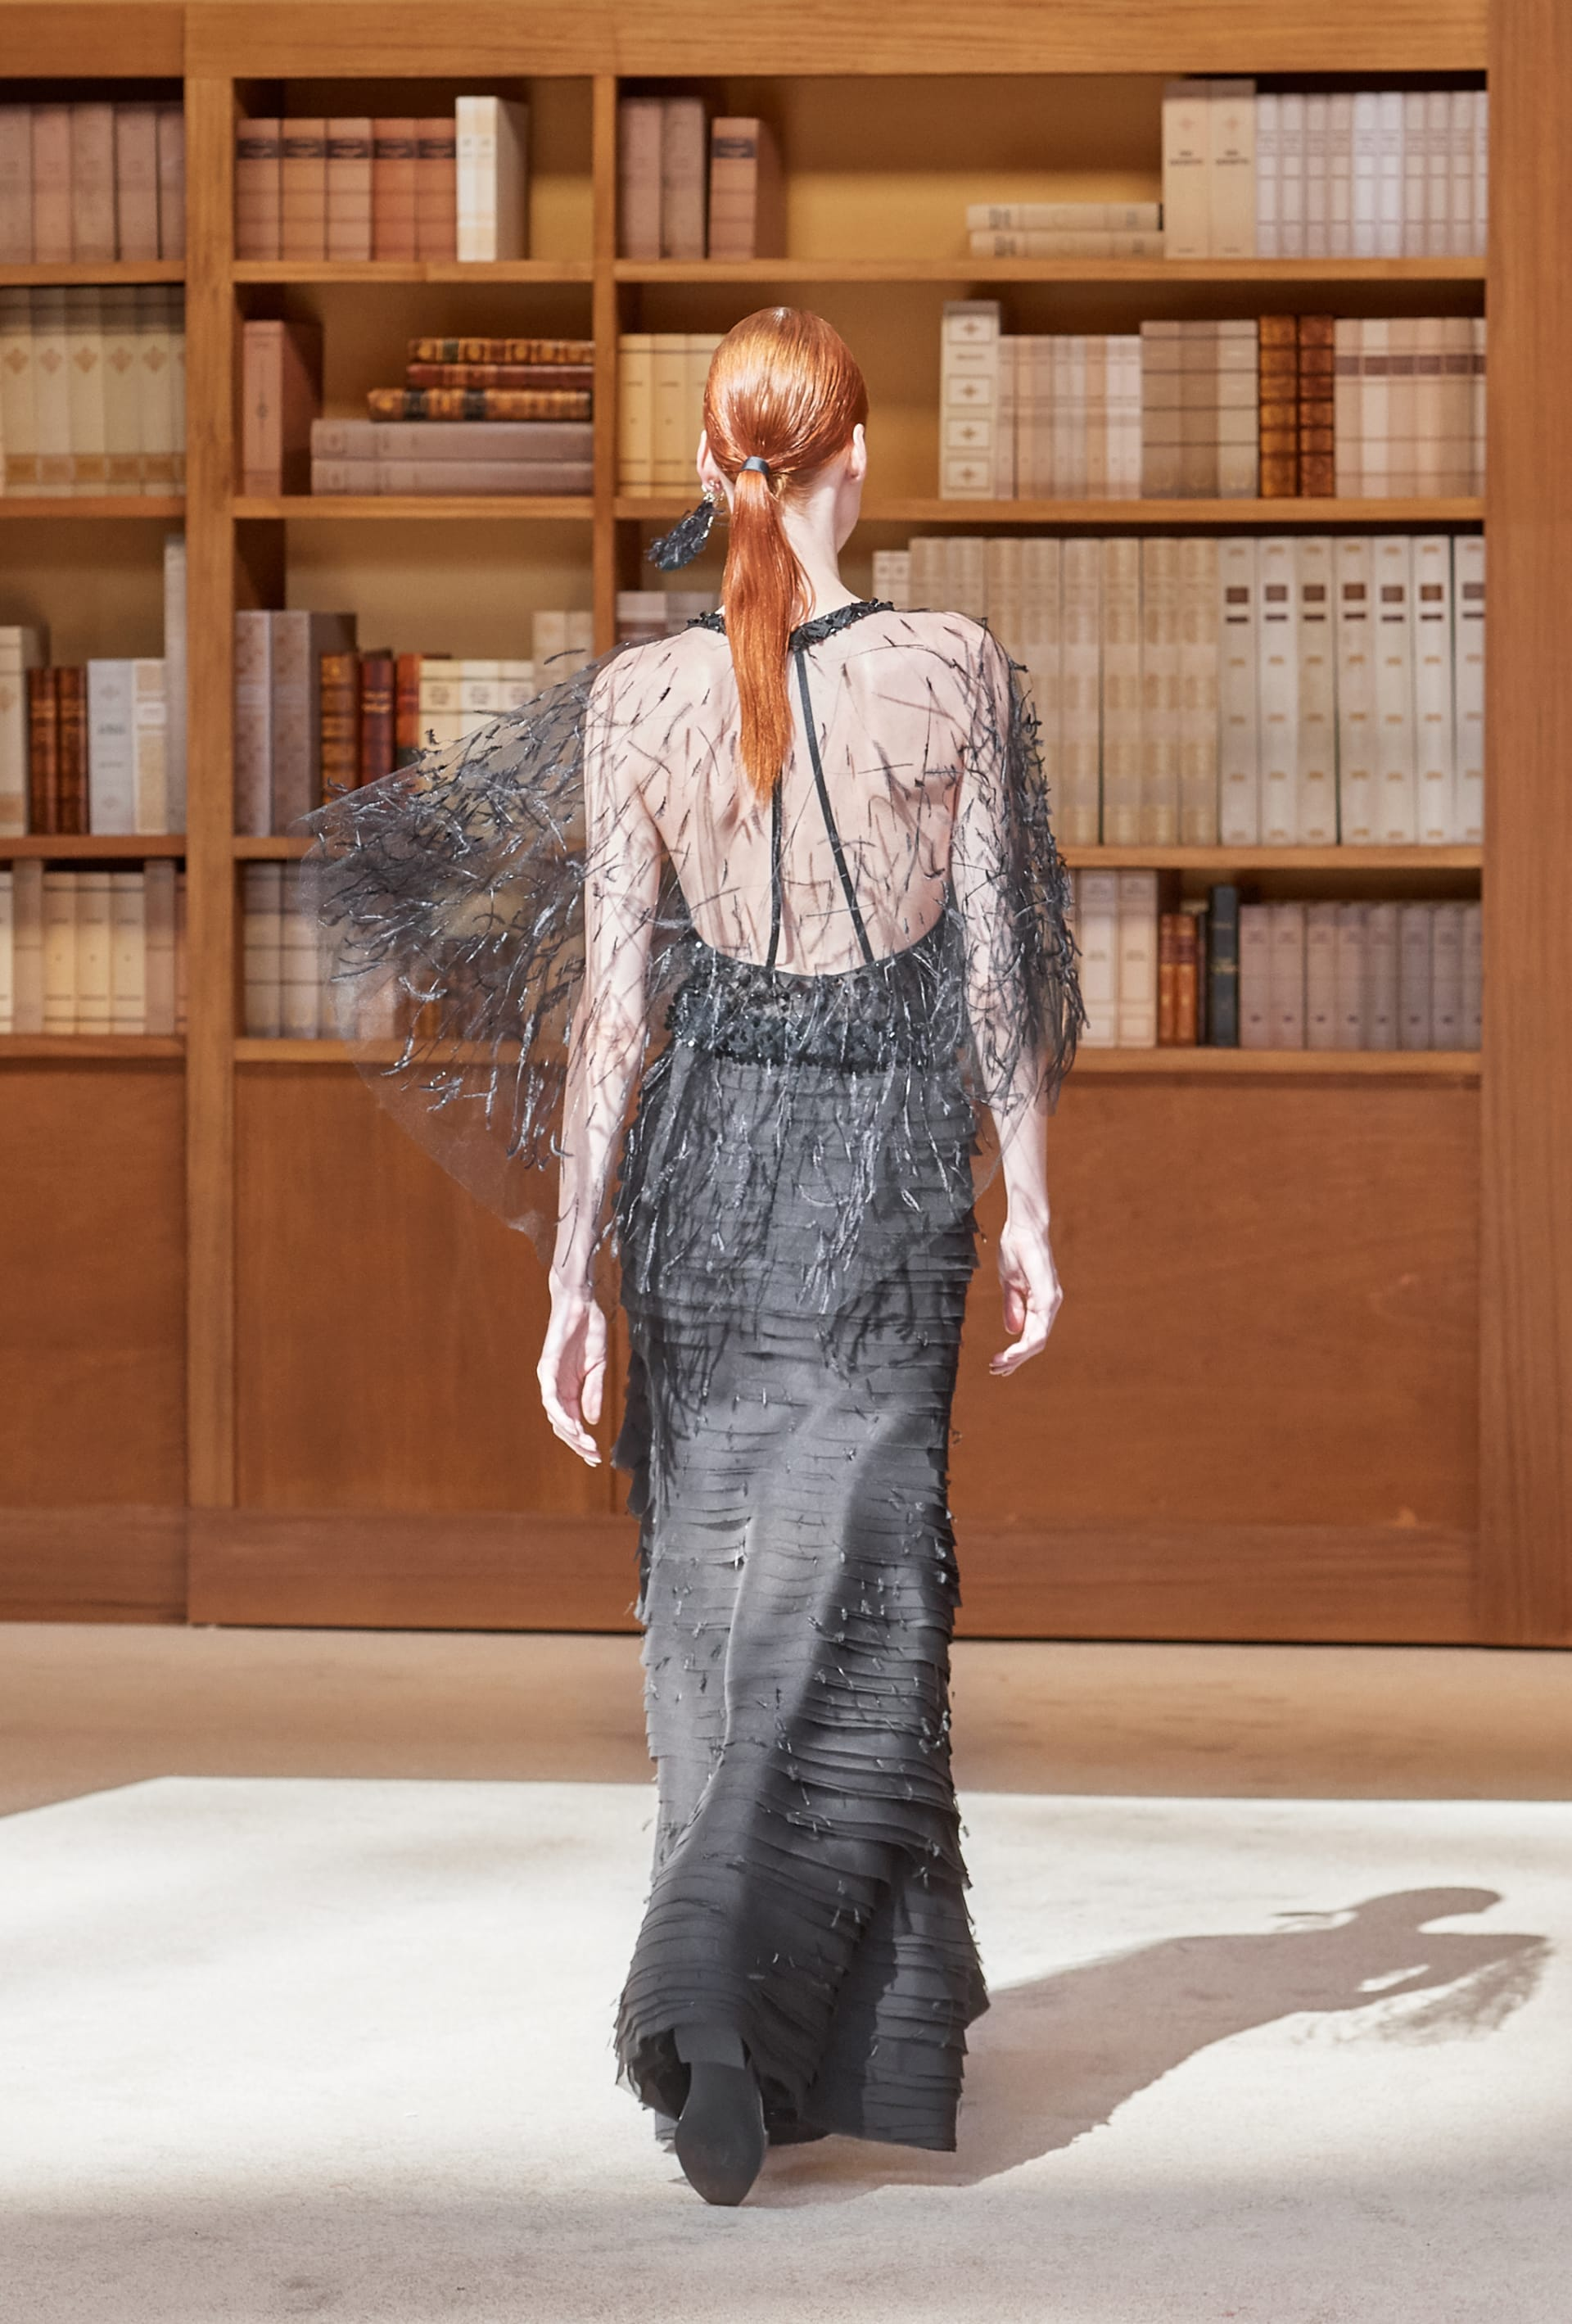 View 8 - Look 69 - Fall-Winter 2019/20 Haute-Couture - see full sized version